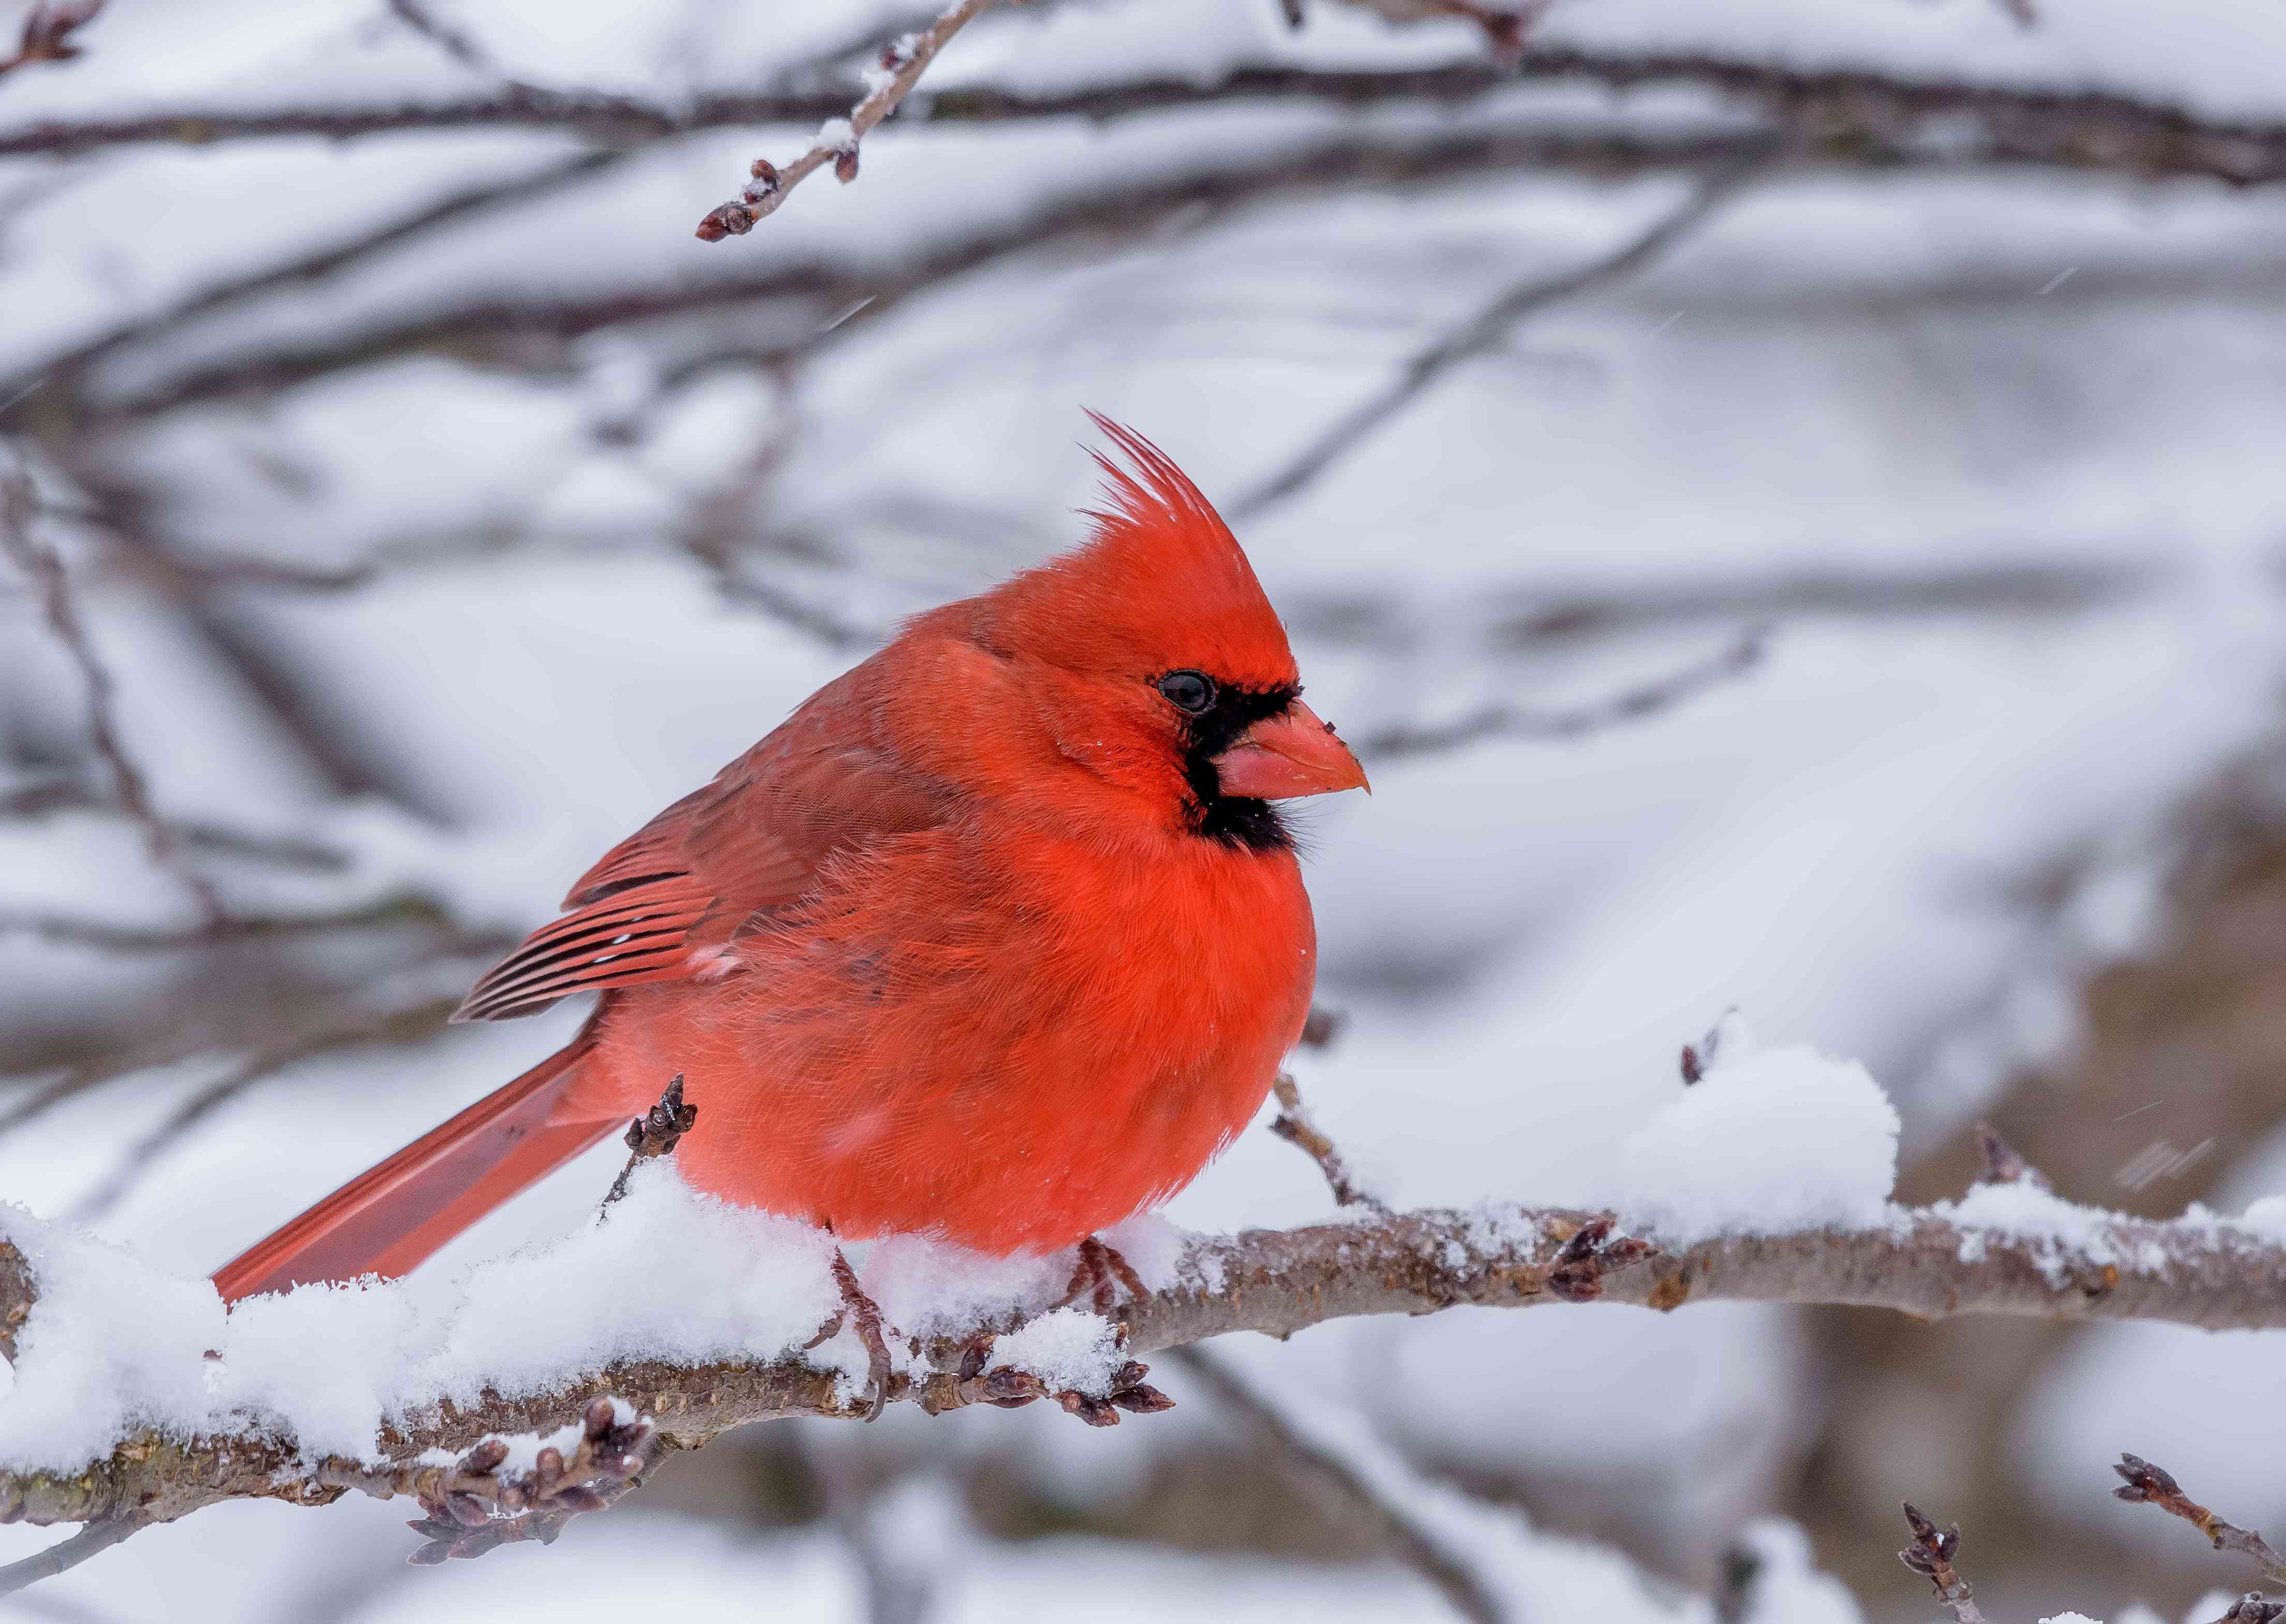 Male Cardinal perched during a snow storm